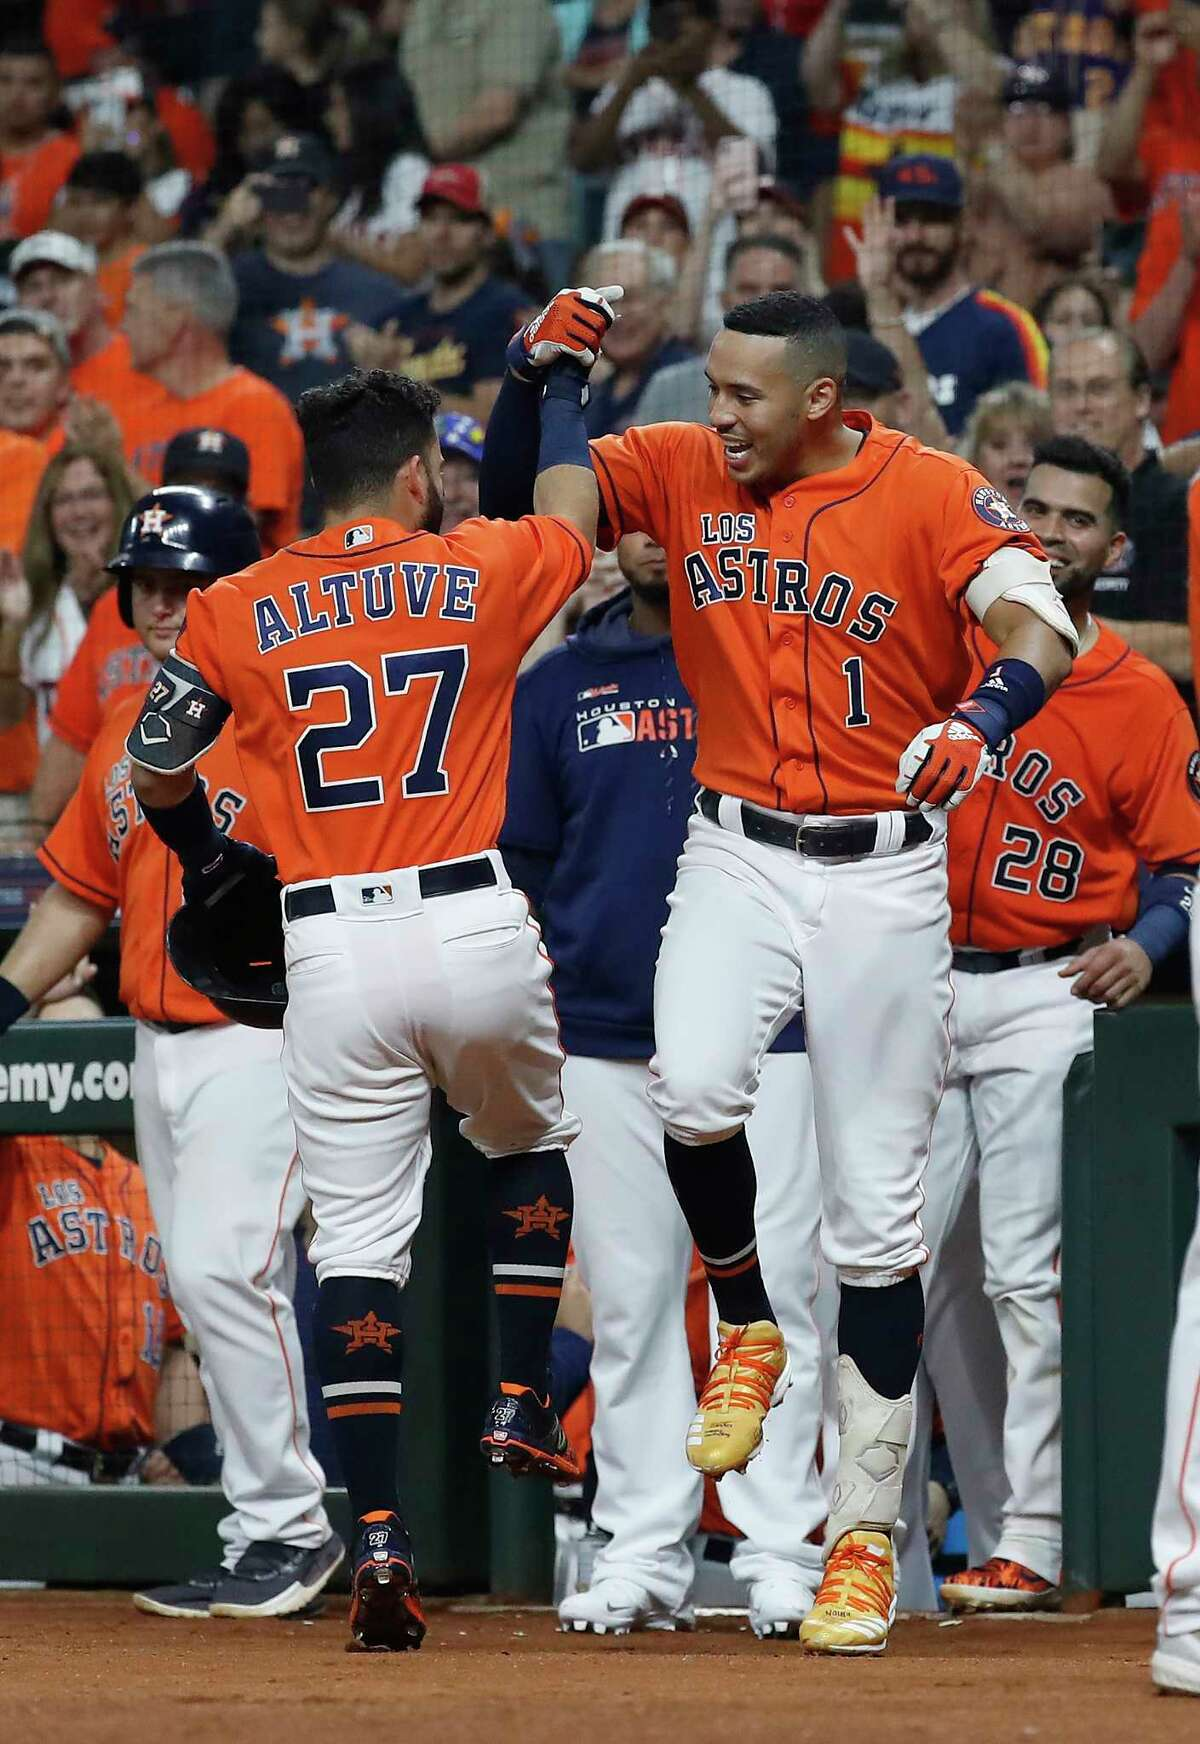 Houston Astros Jose Altuve (27) celebrates his home run with Carlos Correa (1) during the first inning of an MLB baseball game at Minute Maid Park, Friday, Sept. 20, 2019, in Houston.